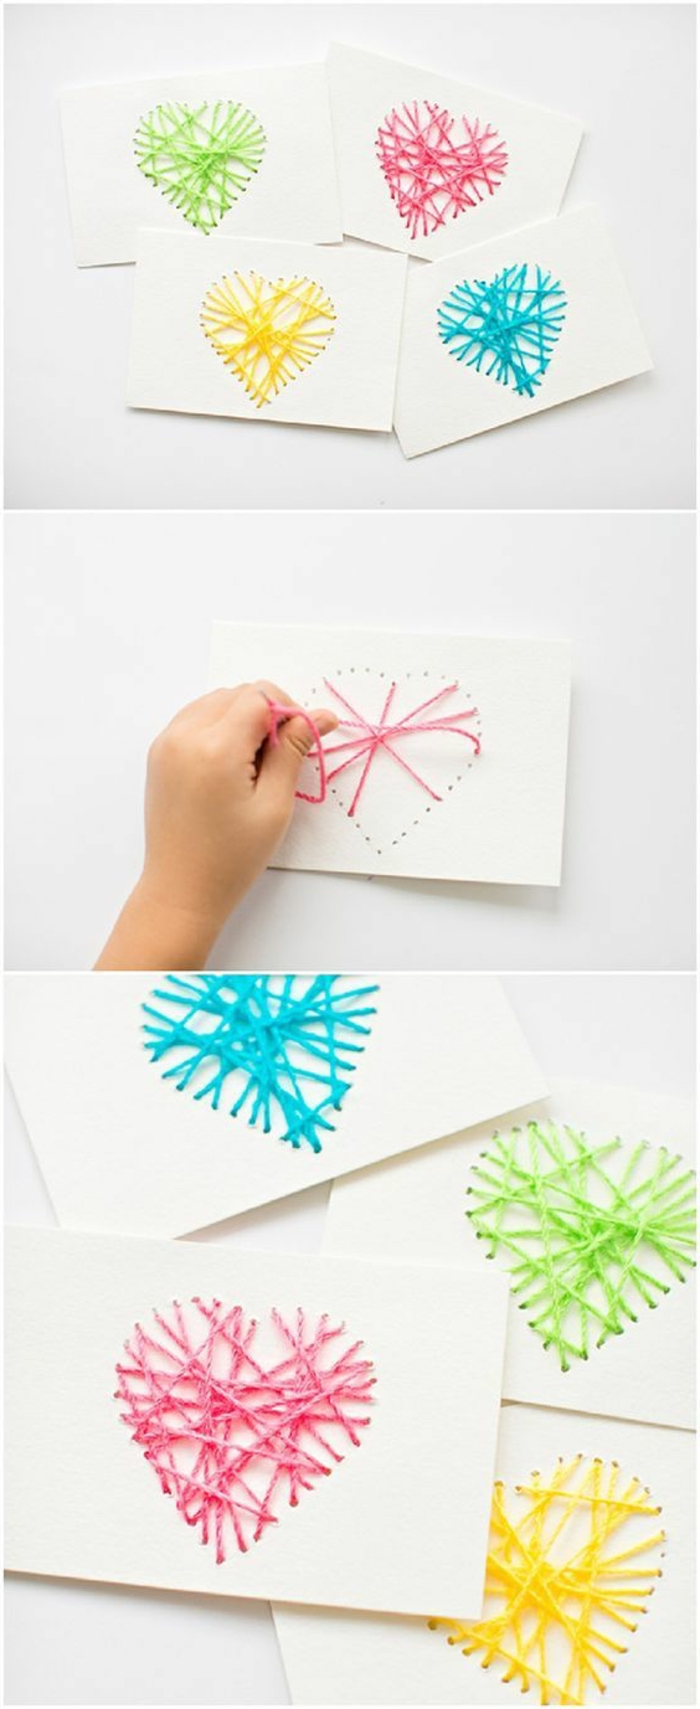 greeting cards, green and red, yellow and blue yarn, in the shape of a heart, fun diy projects